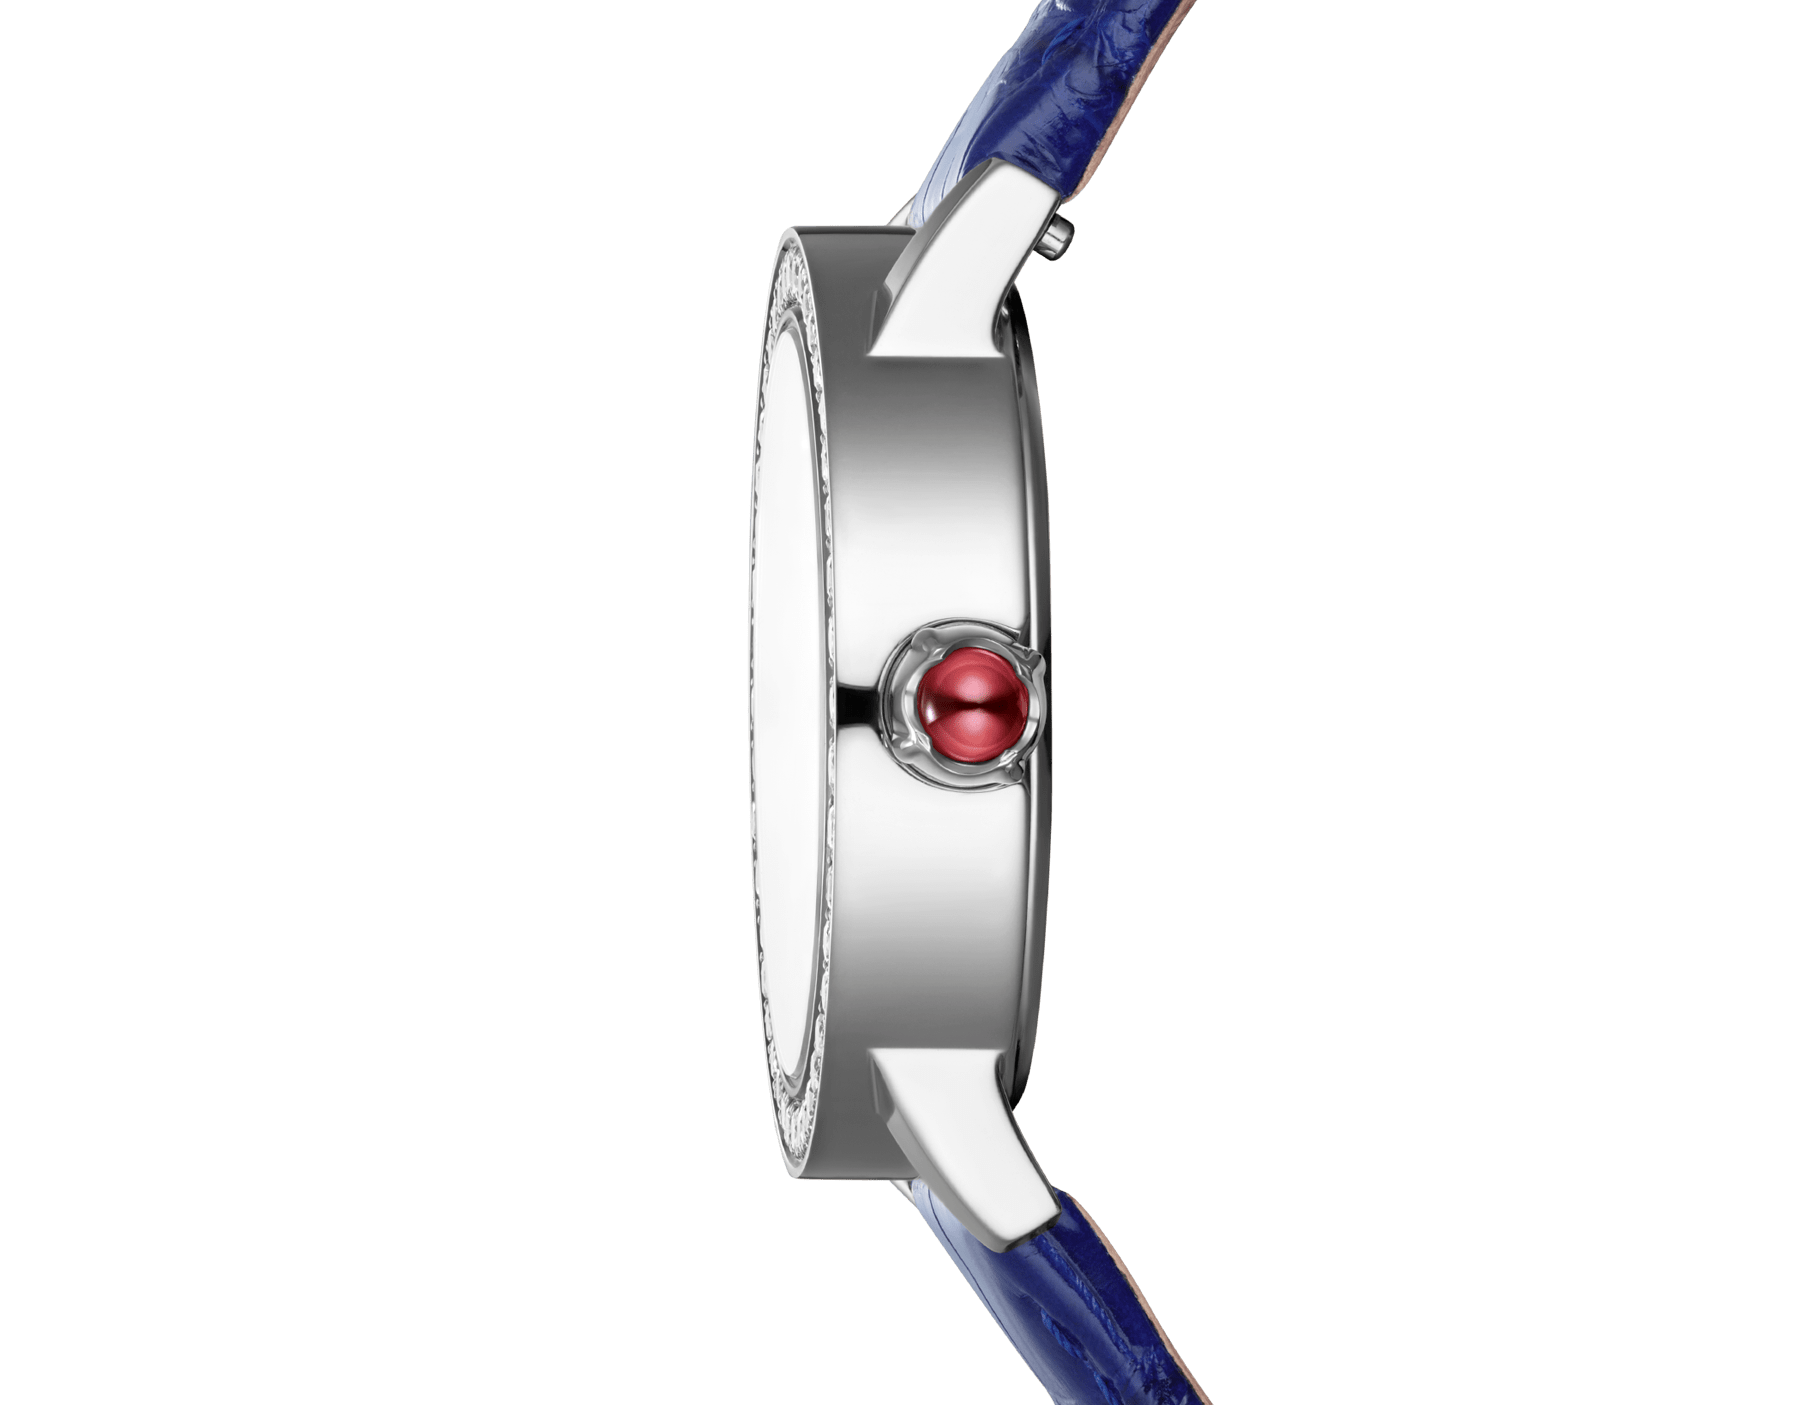 BVLGARI BVLGARI watch with stainless steel case set with brilliant-cut diamonds, mother-of-pearl dial, diamond indexes and shiny blue alligator bracelet 102721 image 3